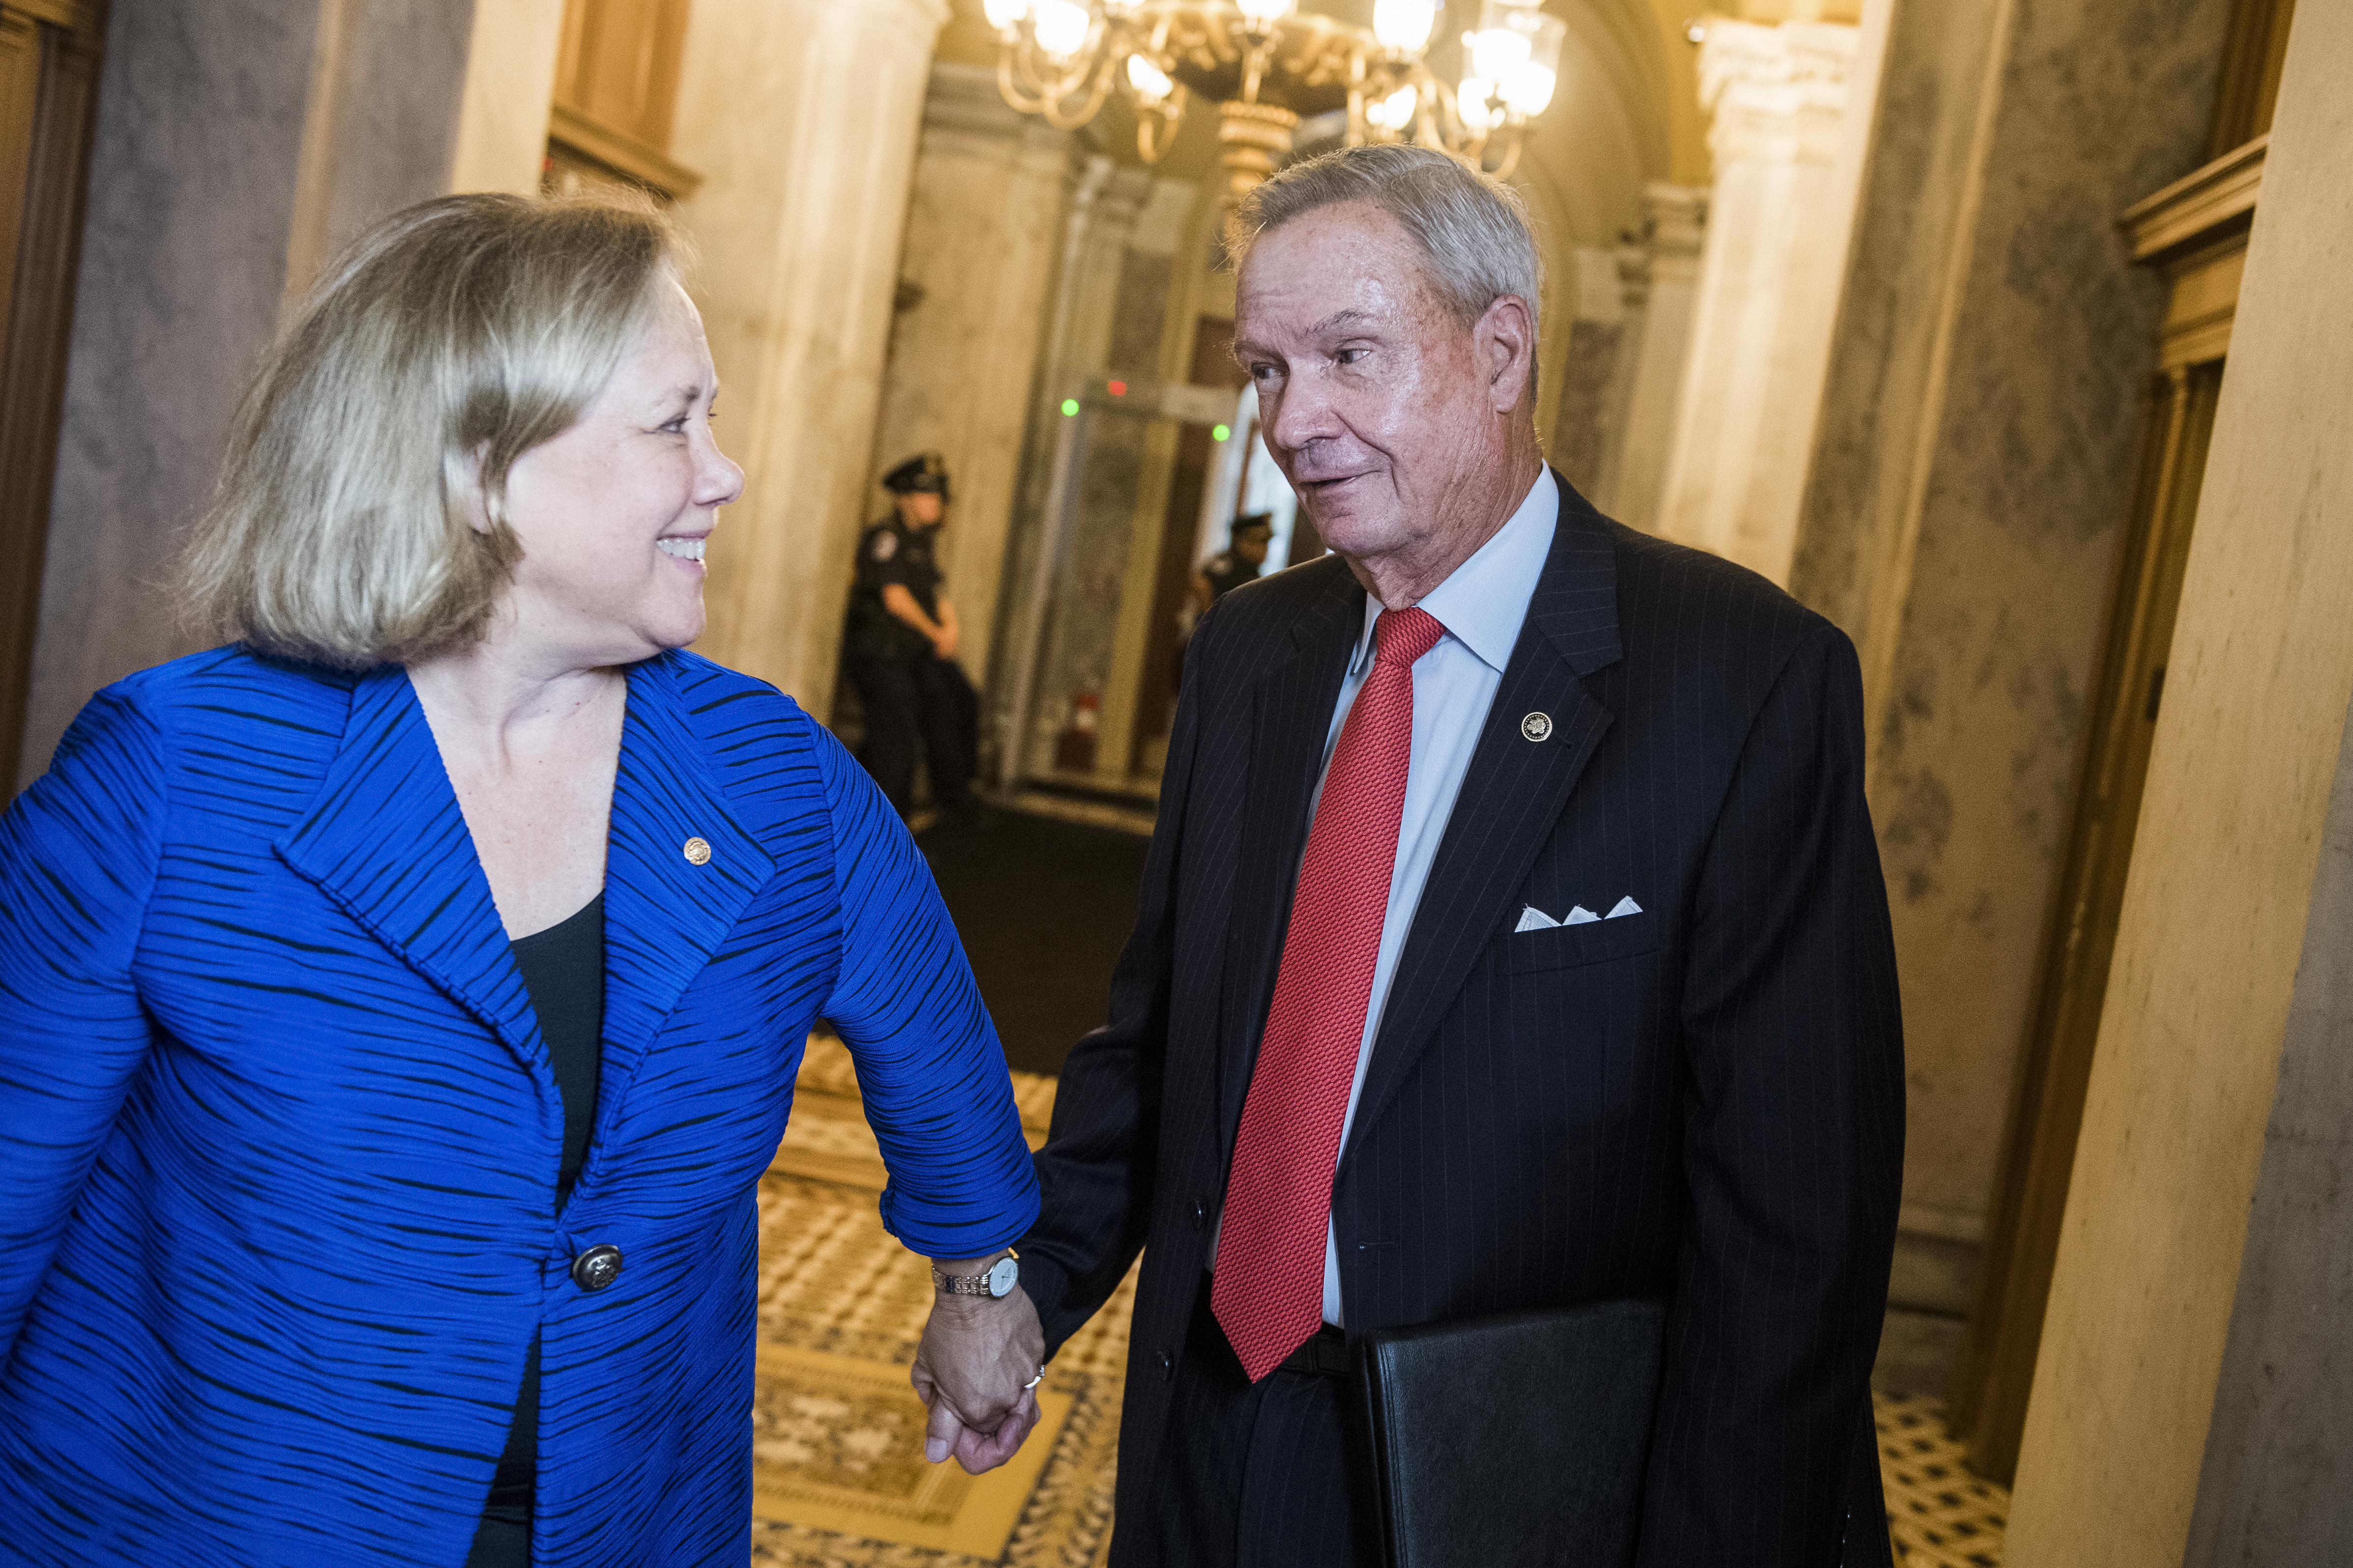 UNITED STATES - JUNE 11: Former Sens. John Breaux, D-La., and Mary Landrieu, D-La., are seen in the Capitol on Tuesday, June 11, 2019. (Photo By Tom Williams/CQ Roll Call)